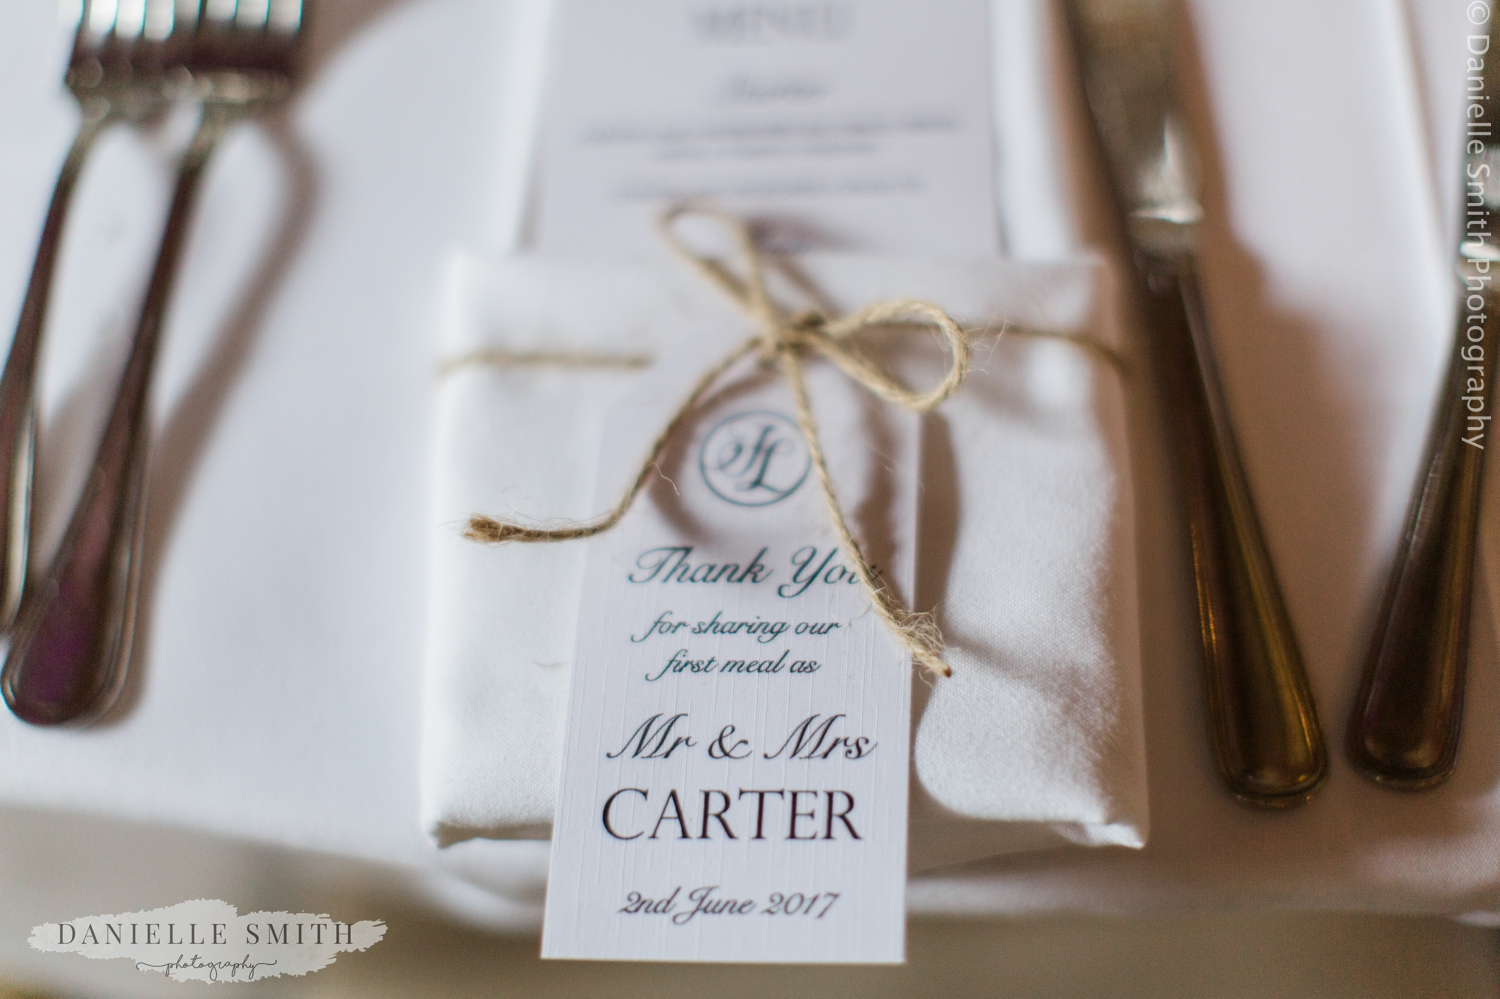 name setting at wedding